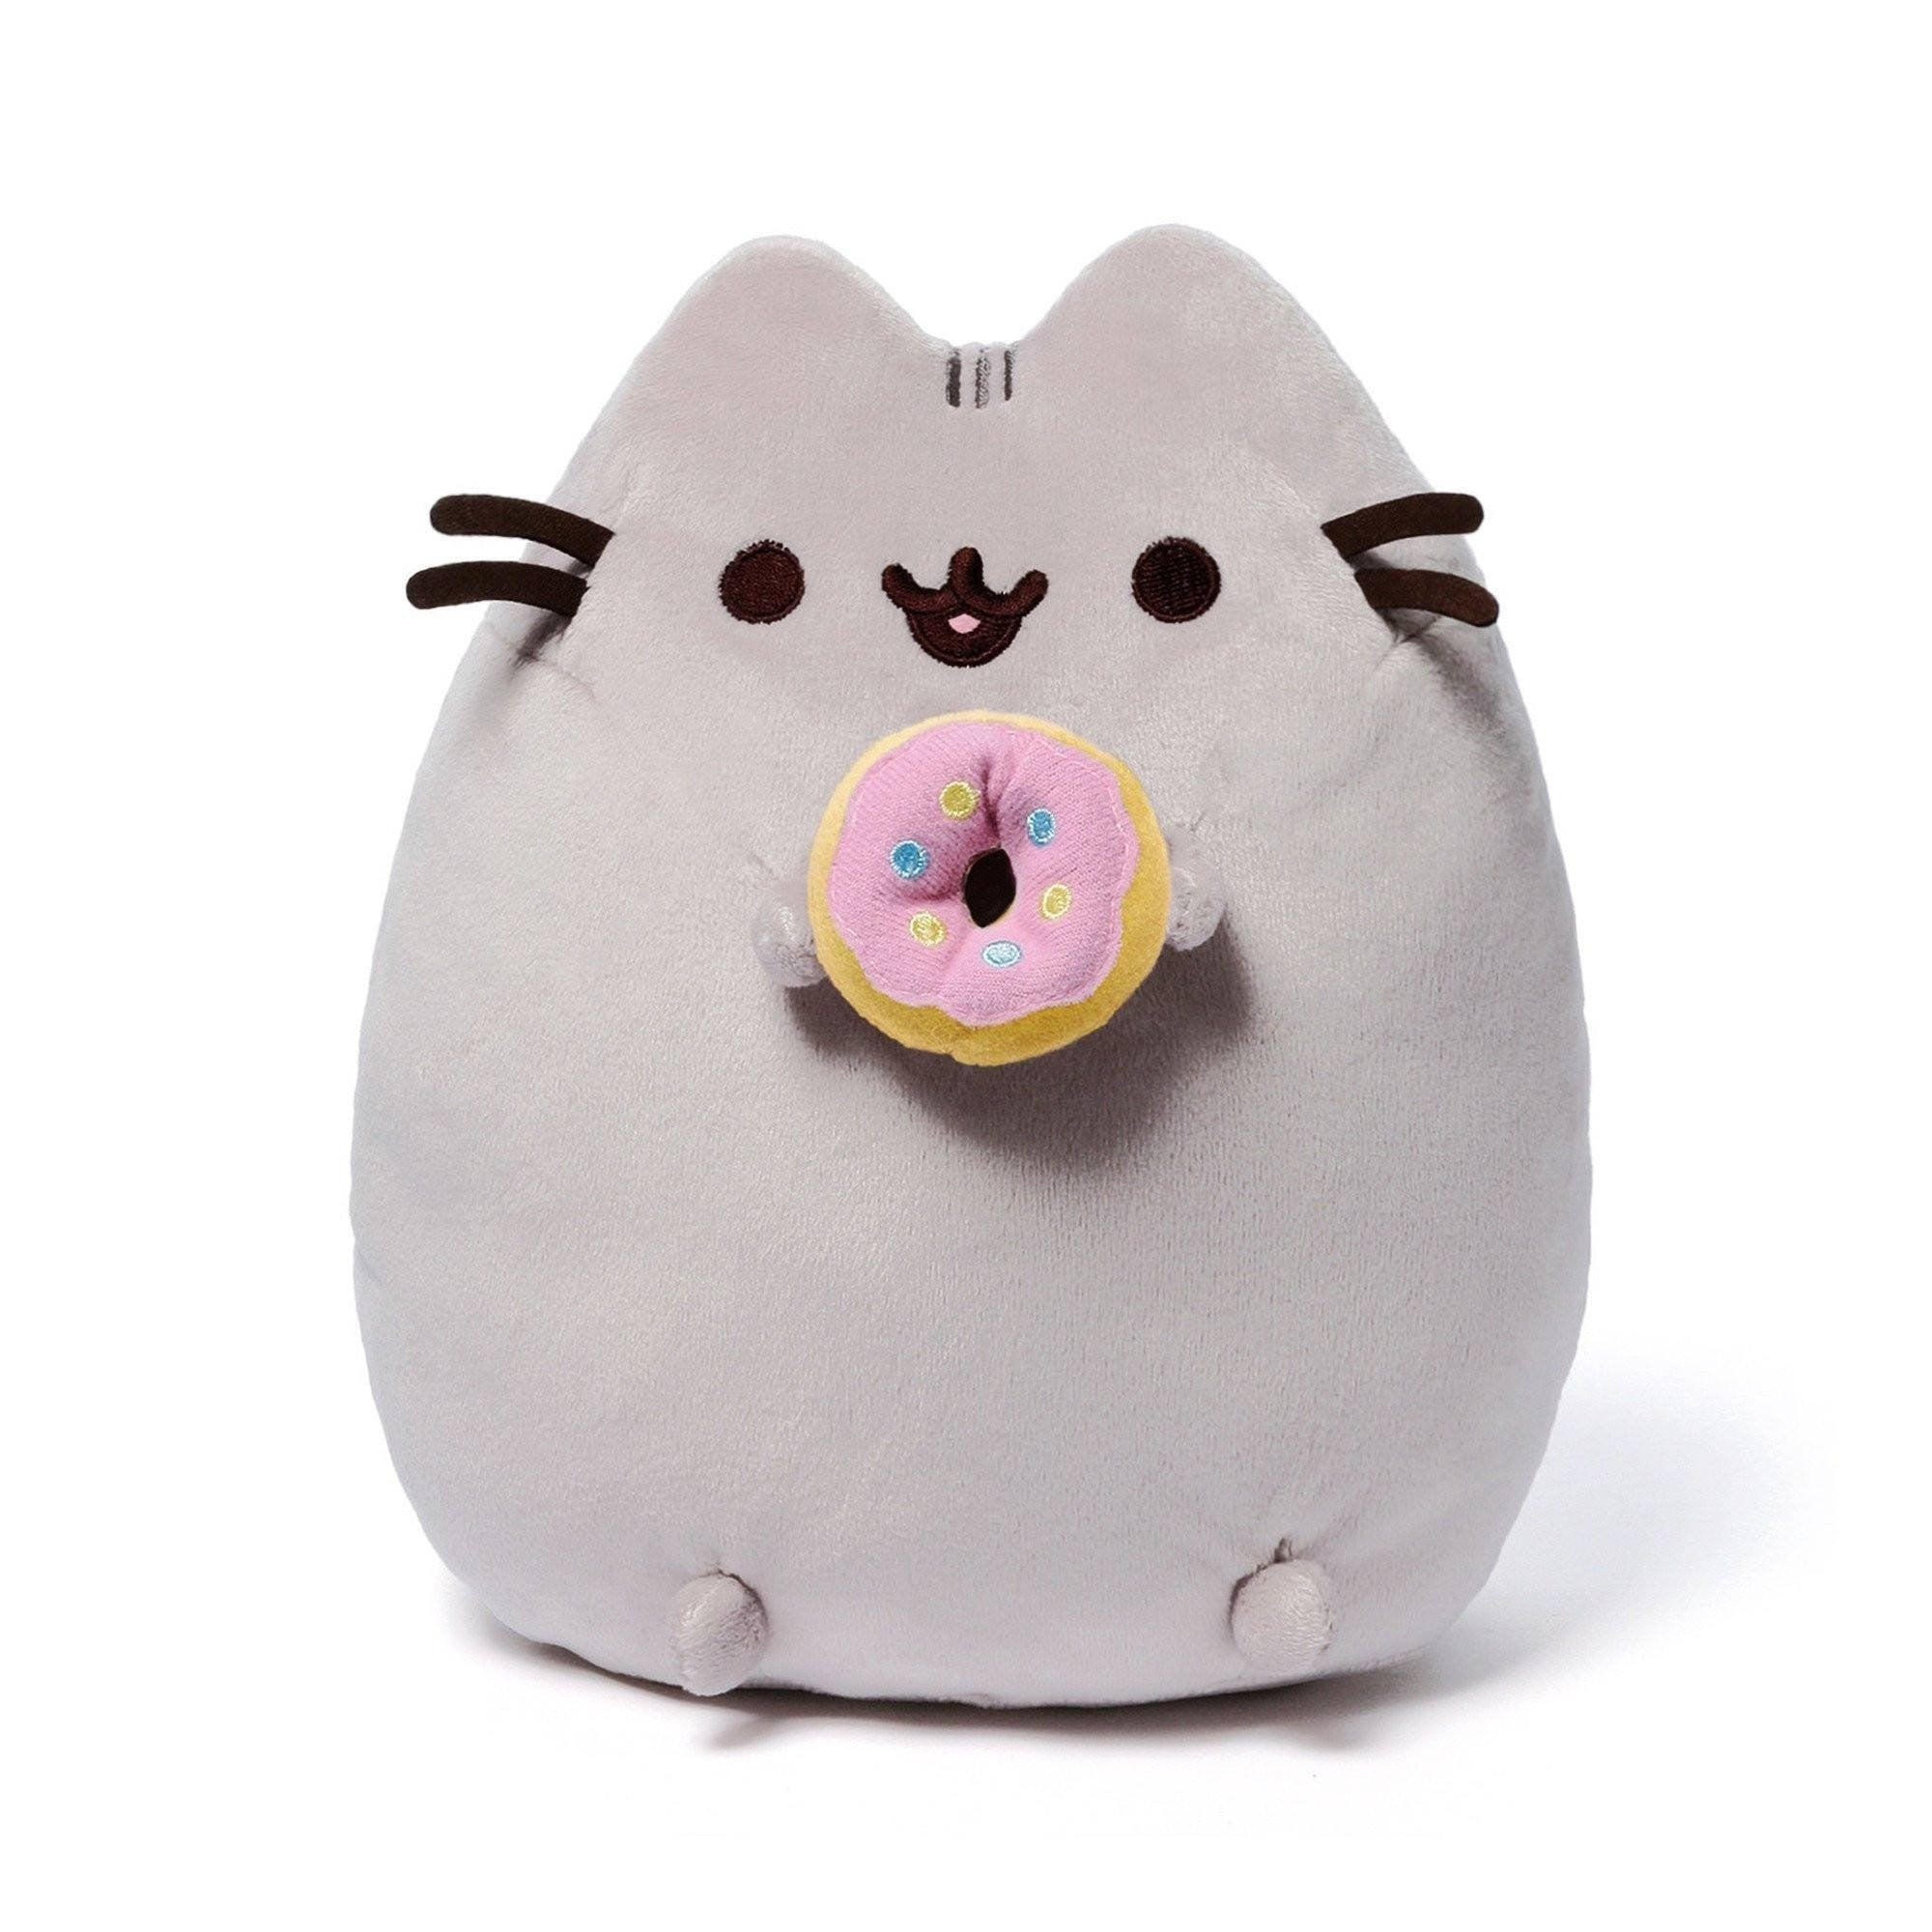 "Pusheen the Cat 10"" Donut Plush GUND"